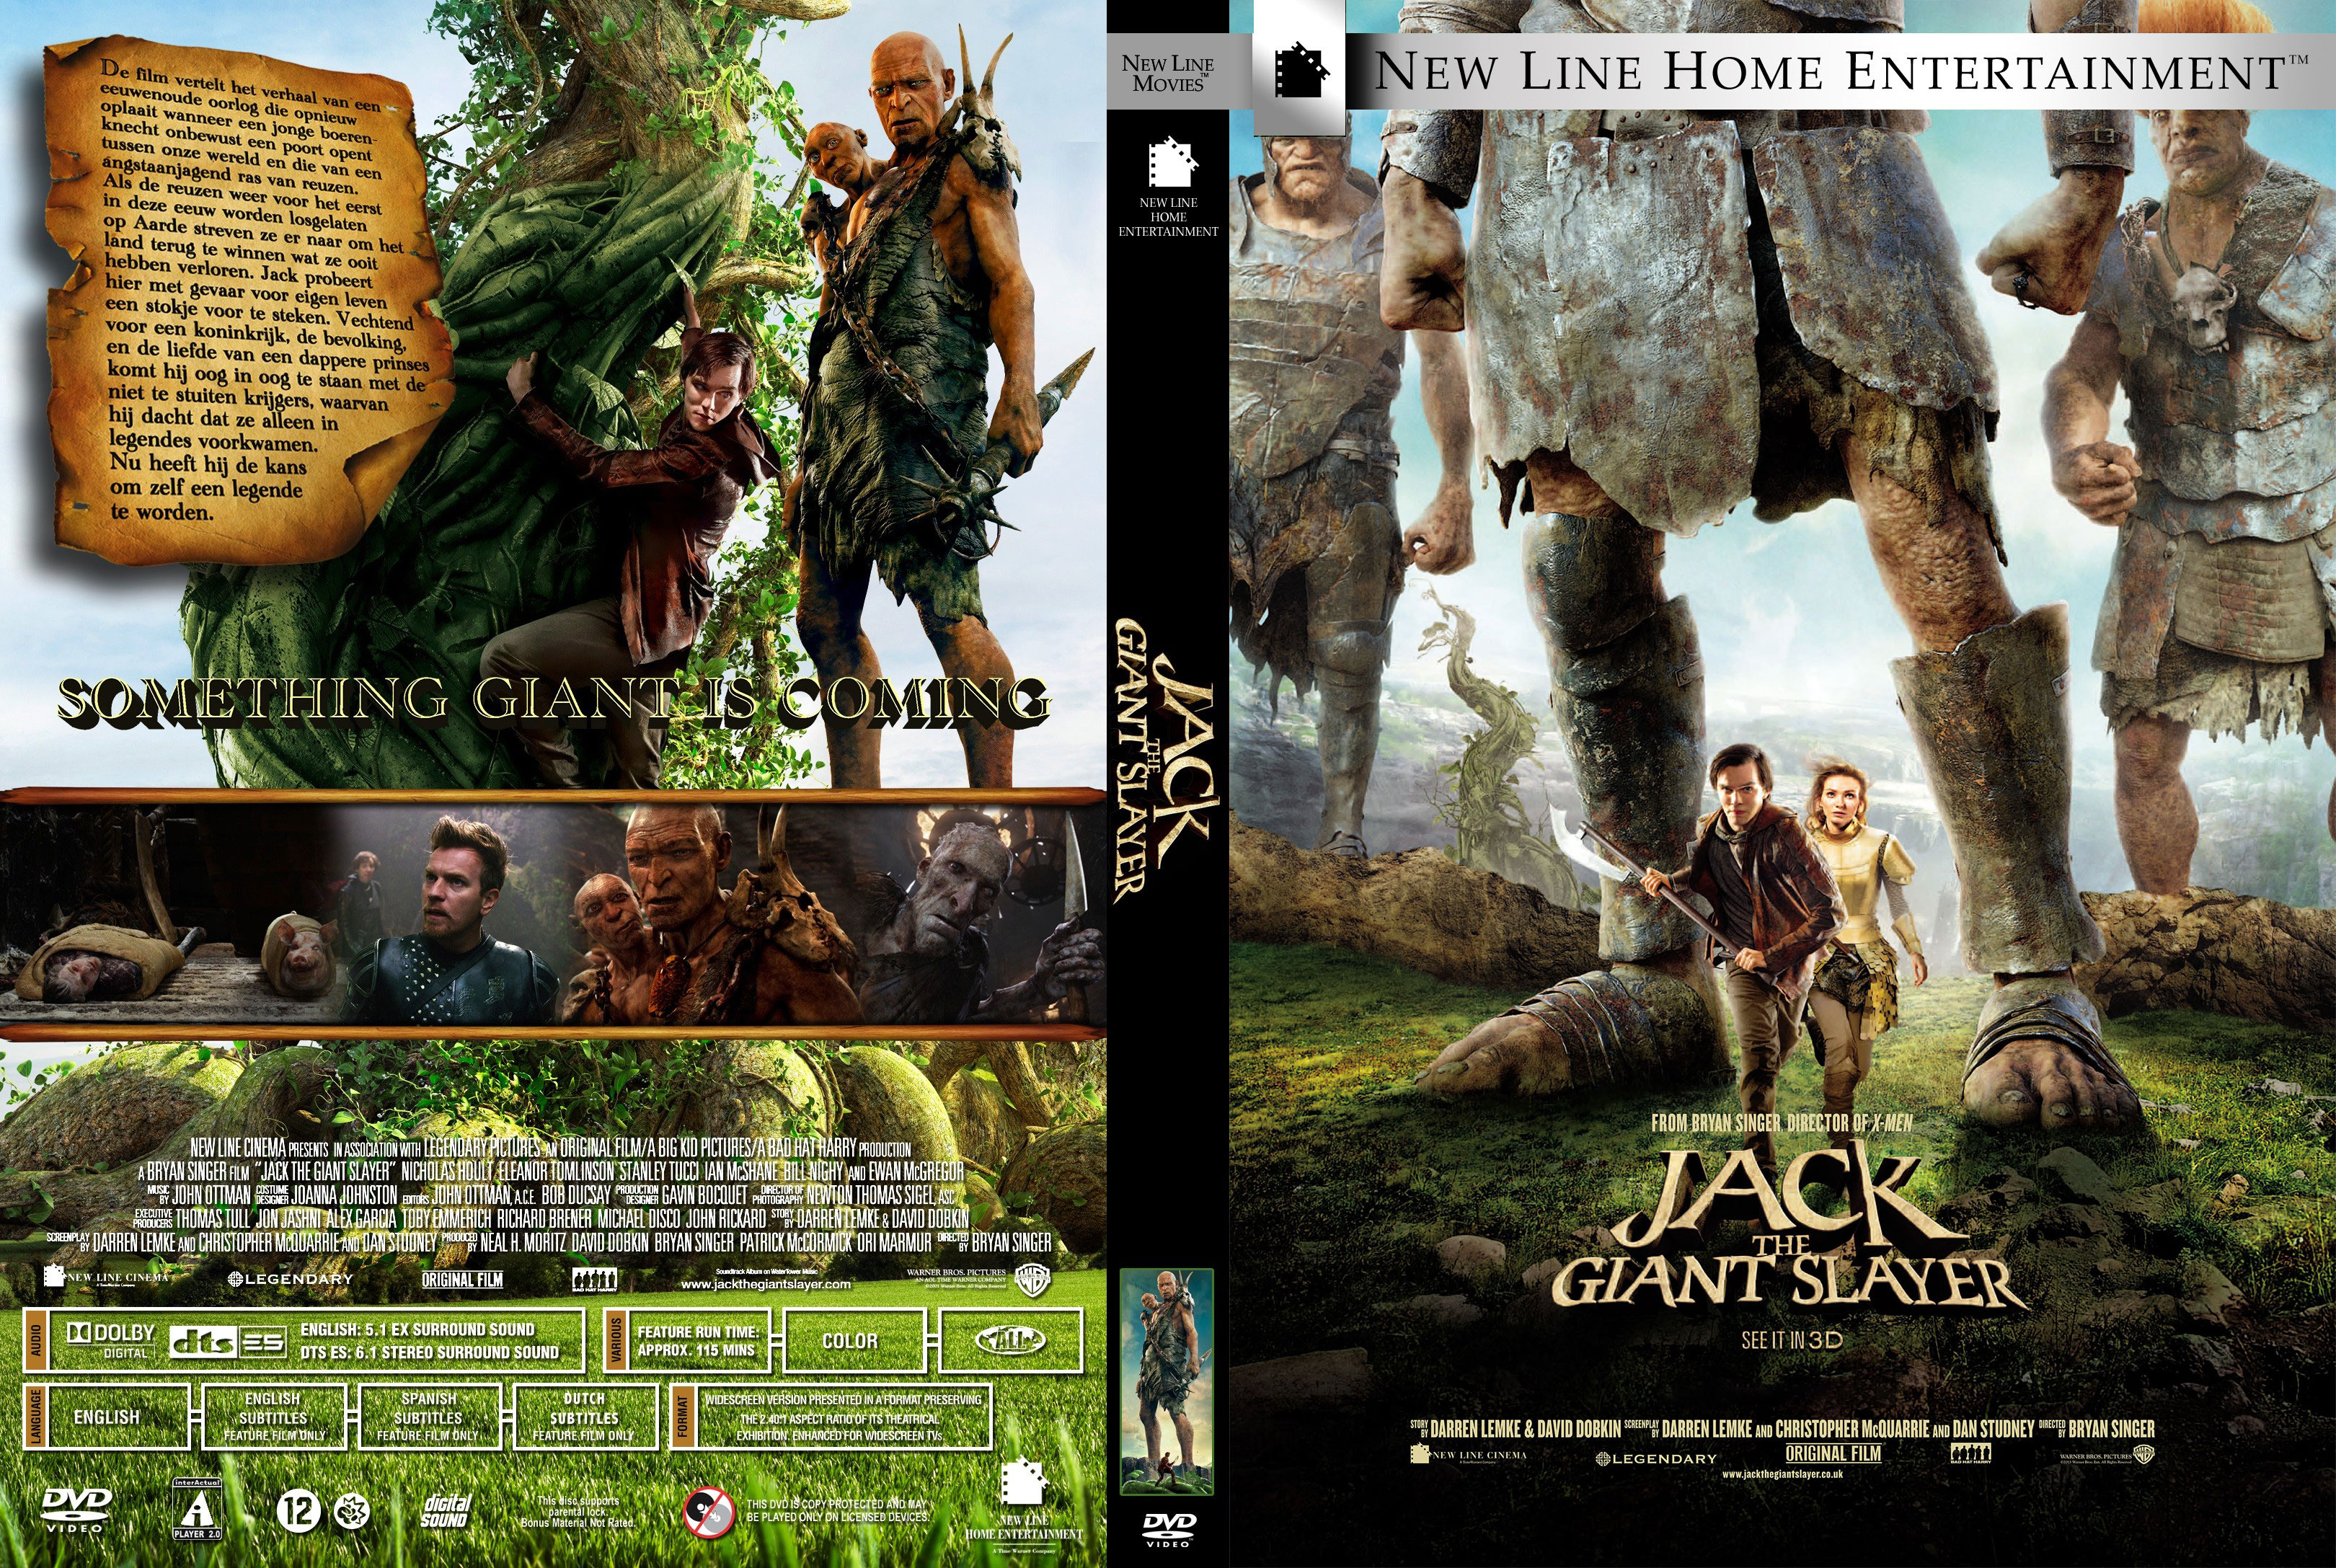 Jack The Giant Slayer 2013 Dvd Covers Cover Century Over 500 000 Album Art Covers For Free